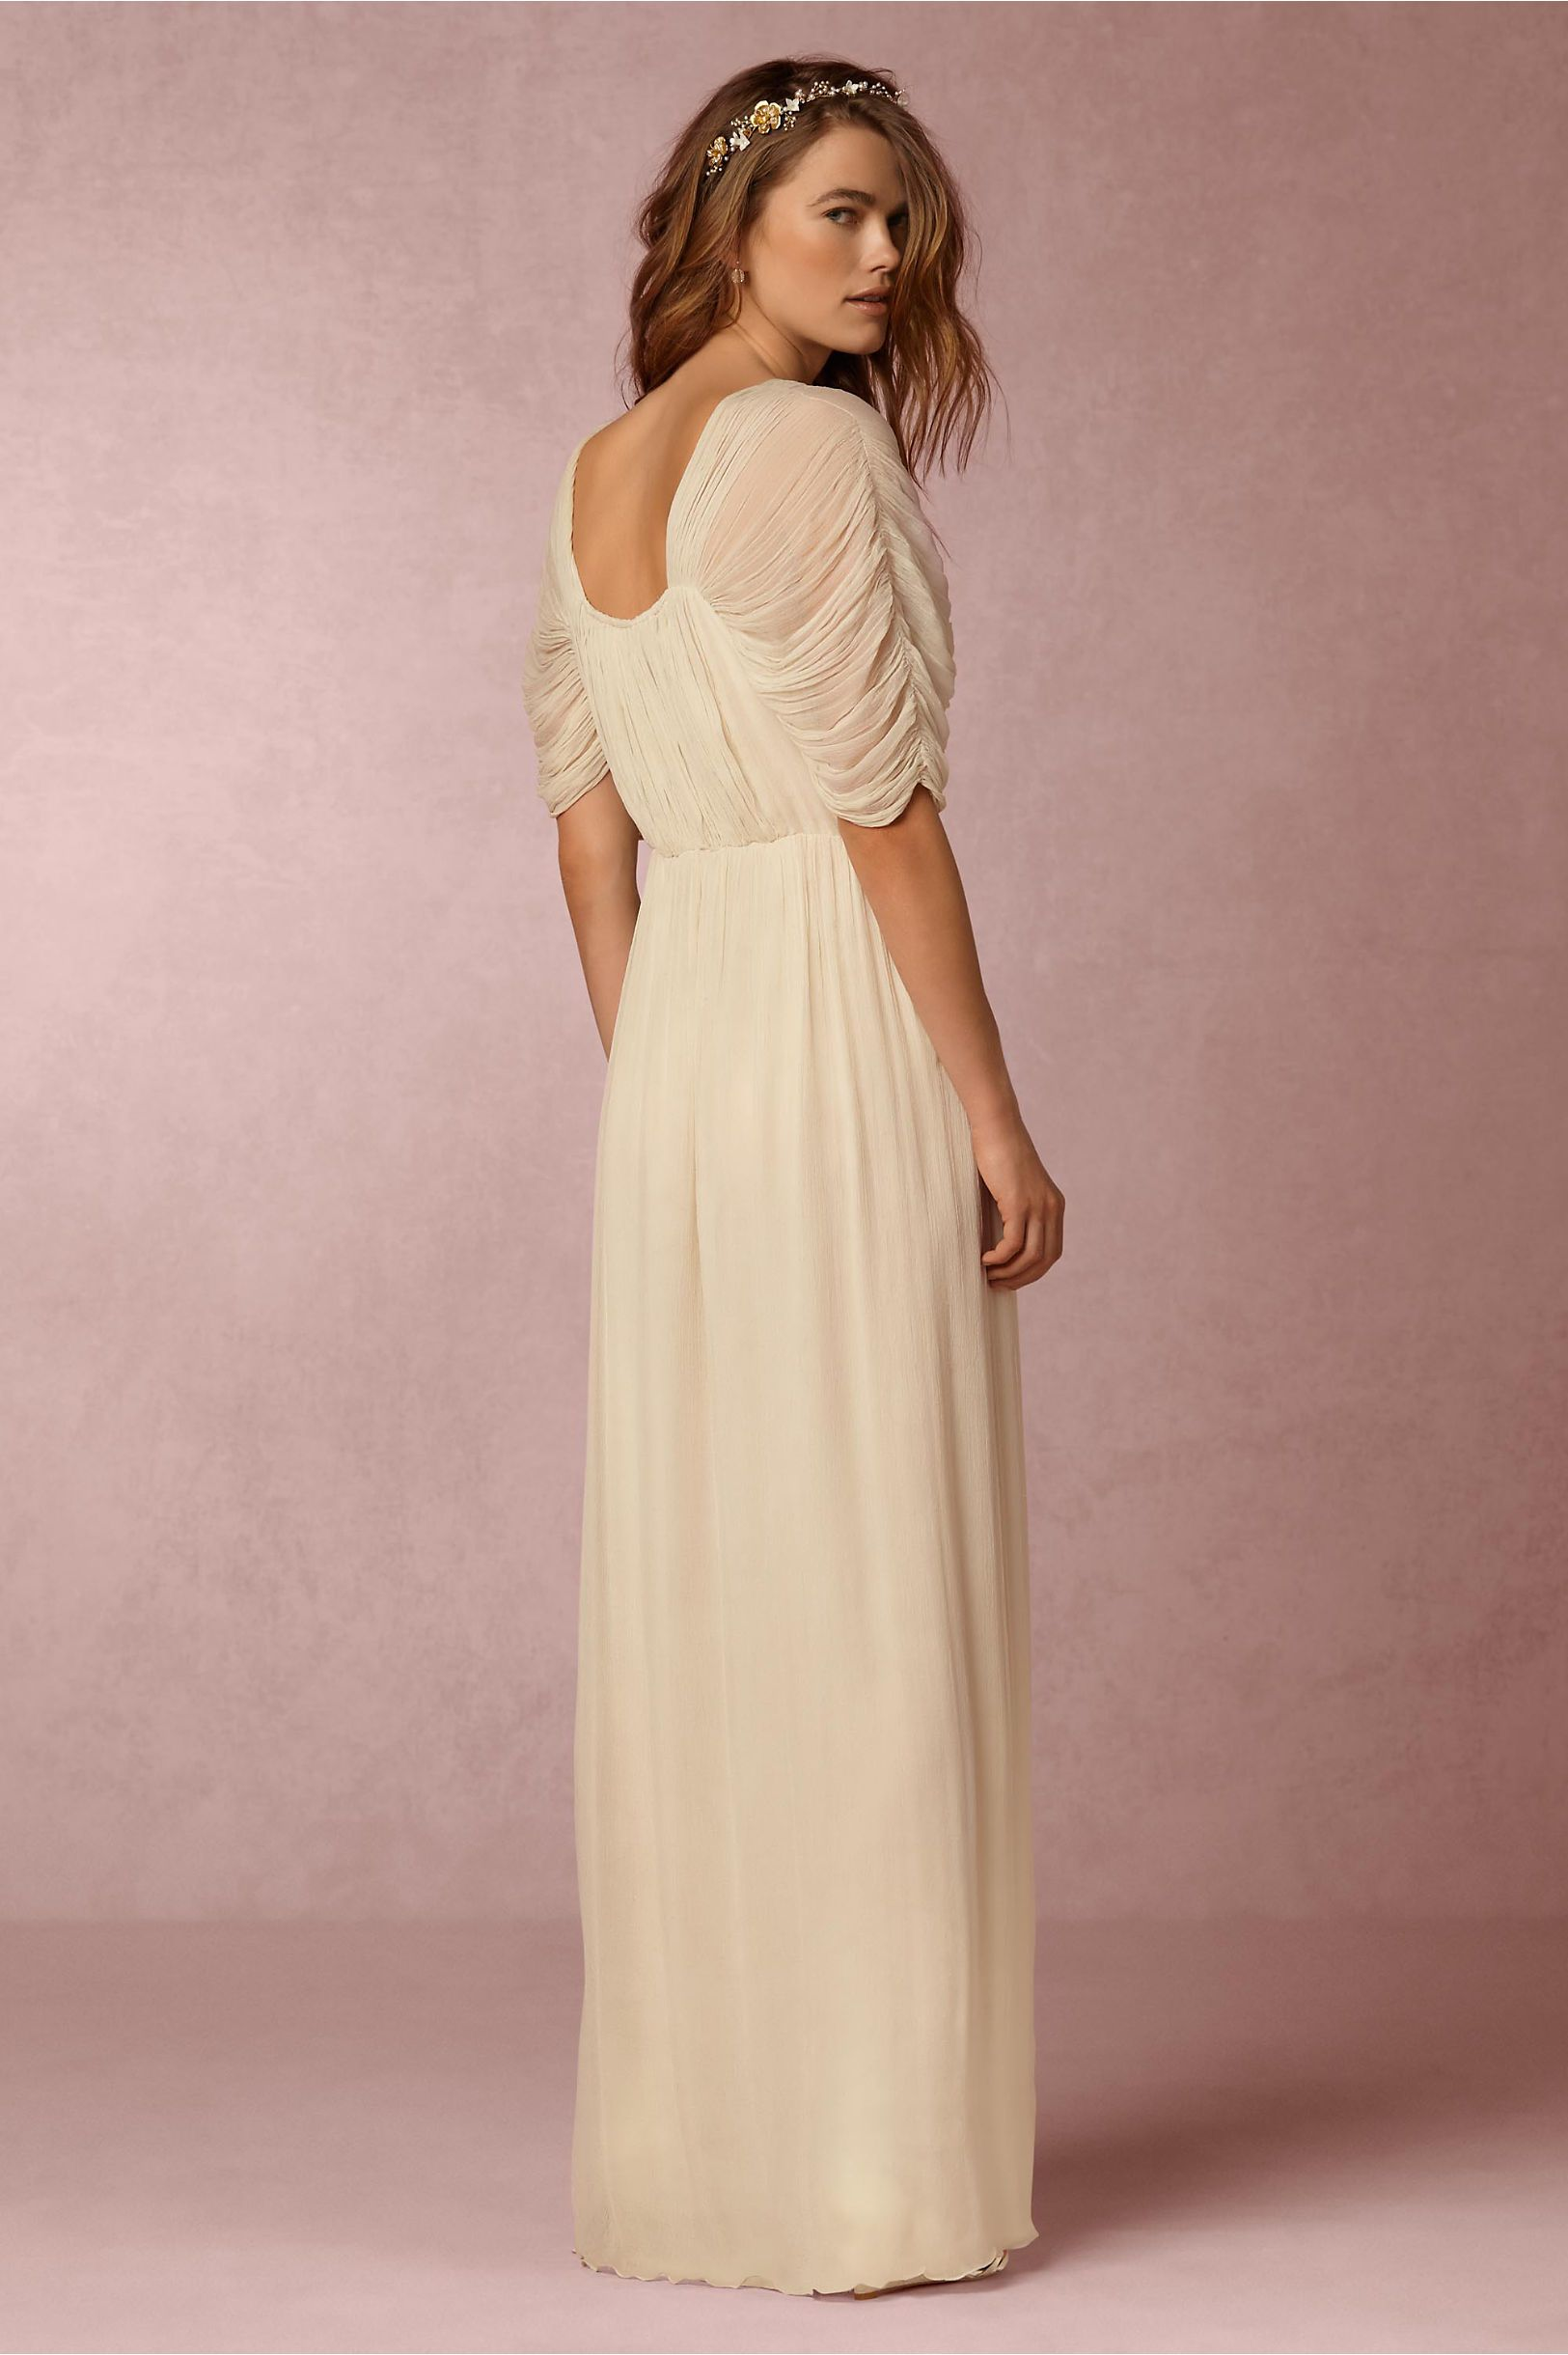 Bhldn hermes dress in sale at bhldn mikaus wedding ideas